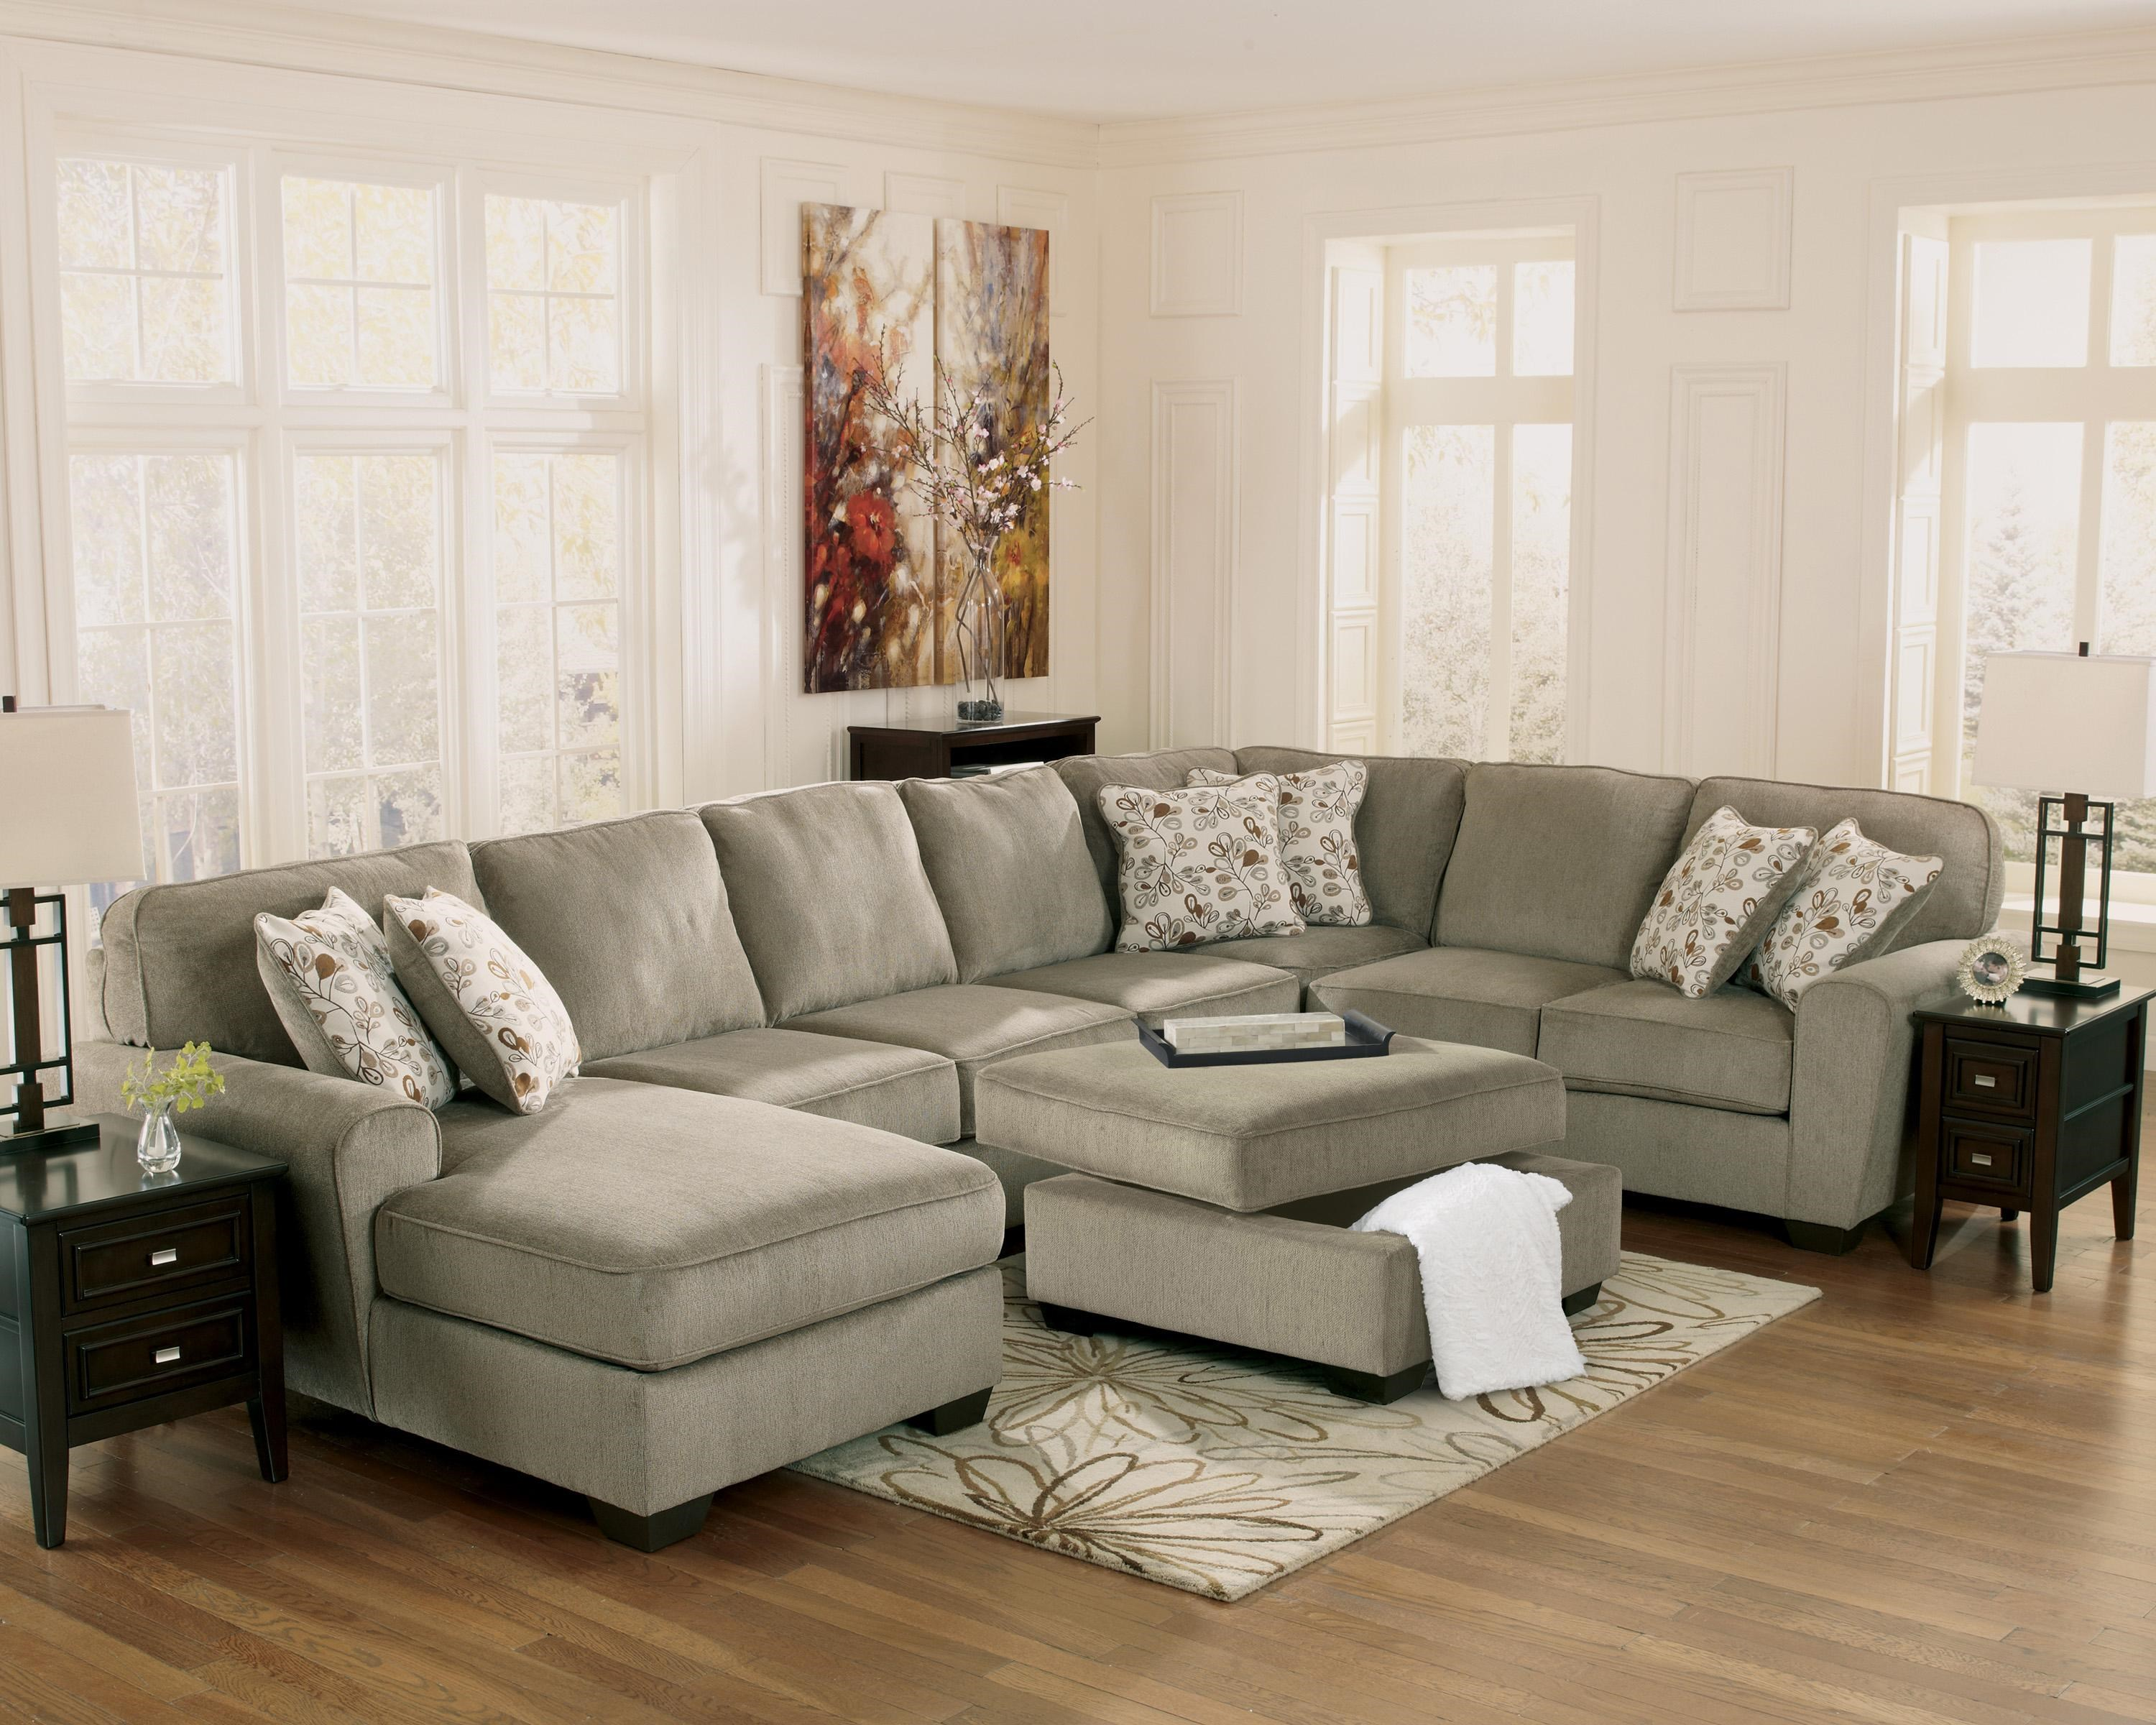 Ashley Furniture Patola Park - Patina 4-Piece Sectional with Left Chaise : ashley furniture patola park sectional - Sectionals, Sofas & Couches